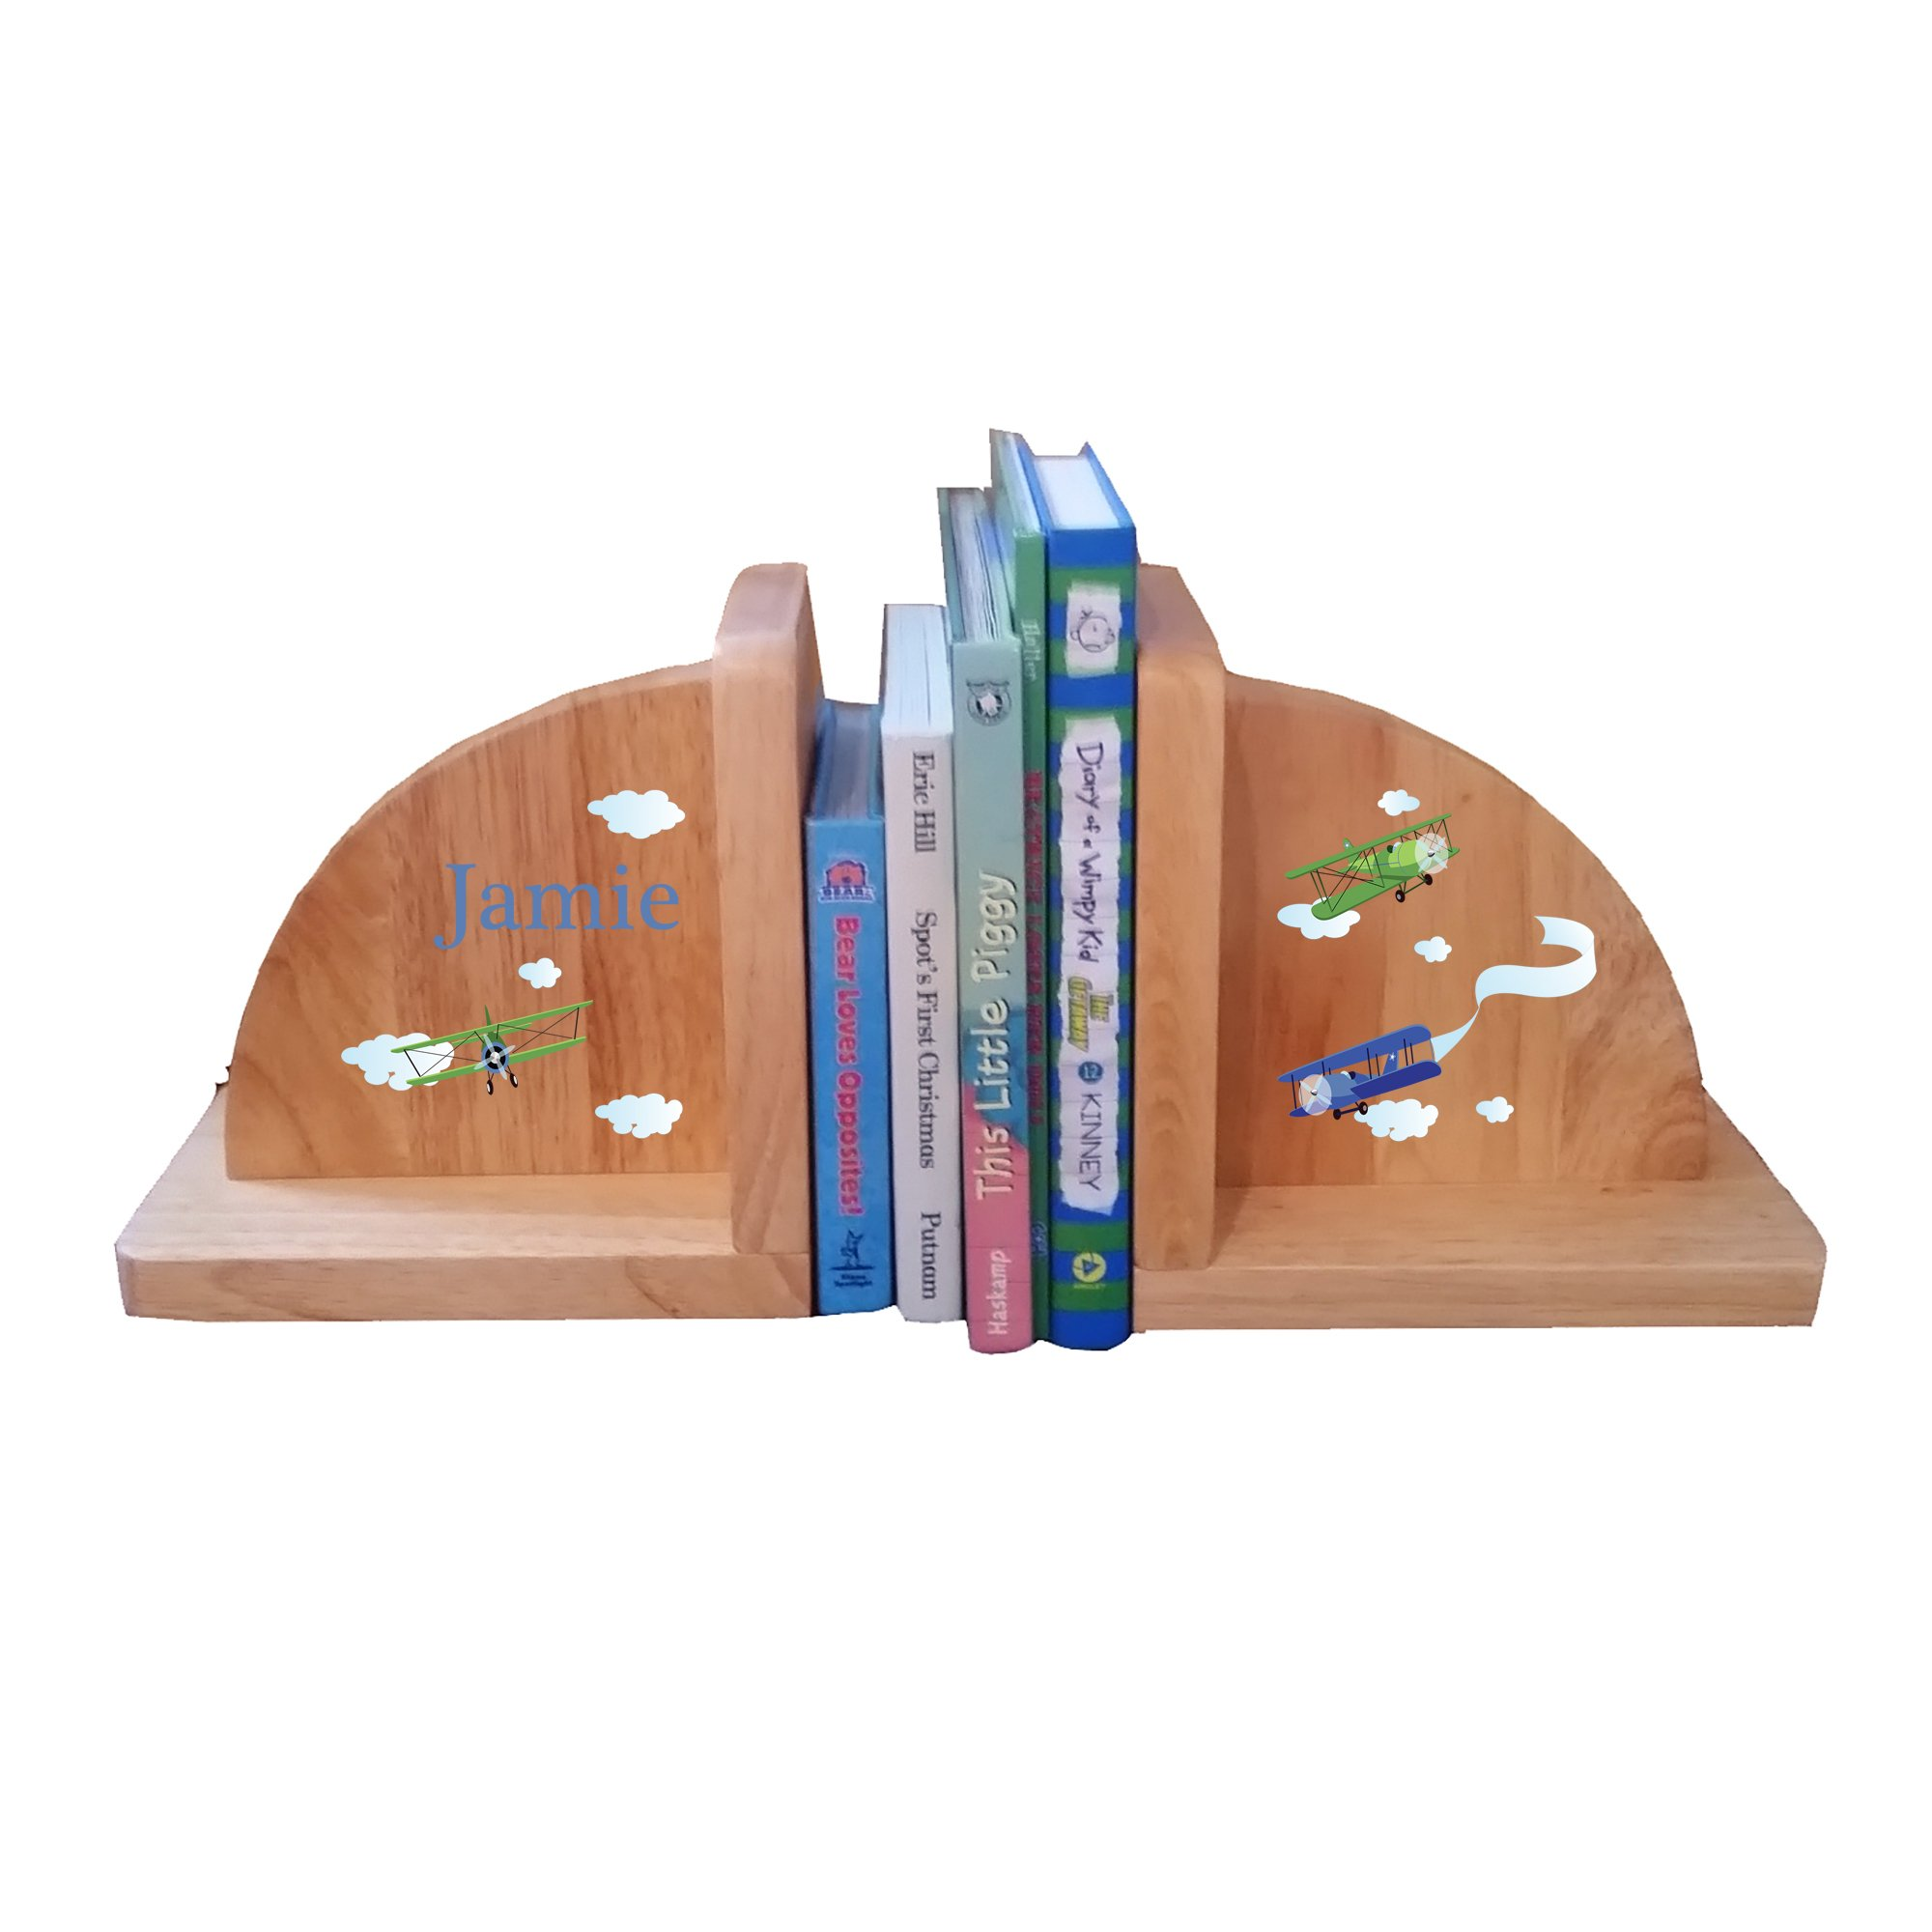 Personalized Bi Planes Natural Childrens Wooden Bookends by MyBambino